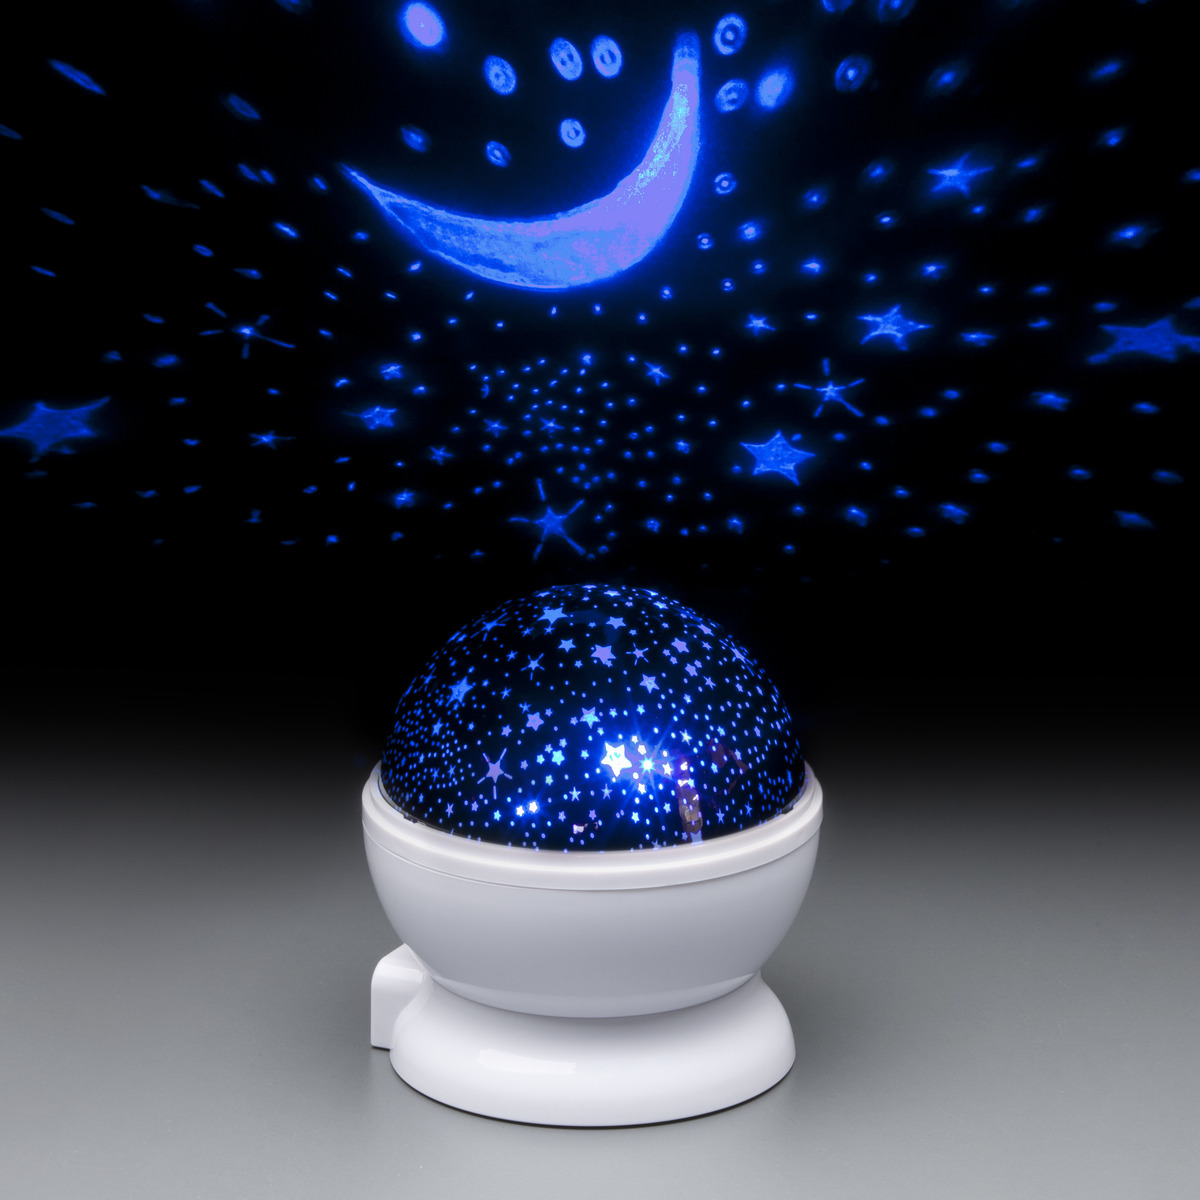 Rotating Star Light Projector Kmart Star Projector Light Star Lights Bedroom Night Light Projector